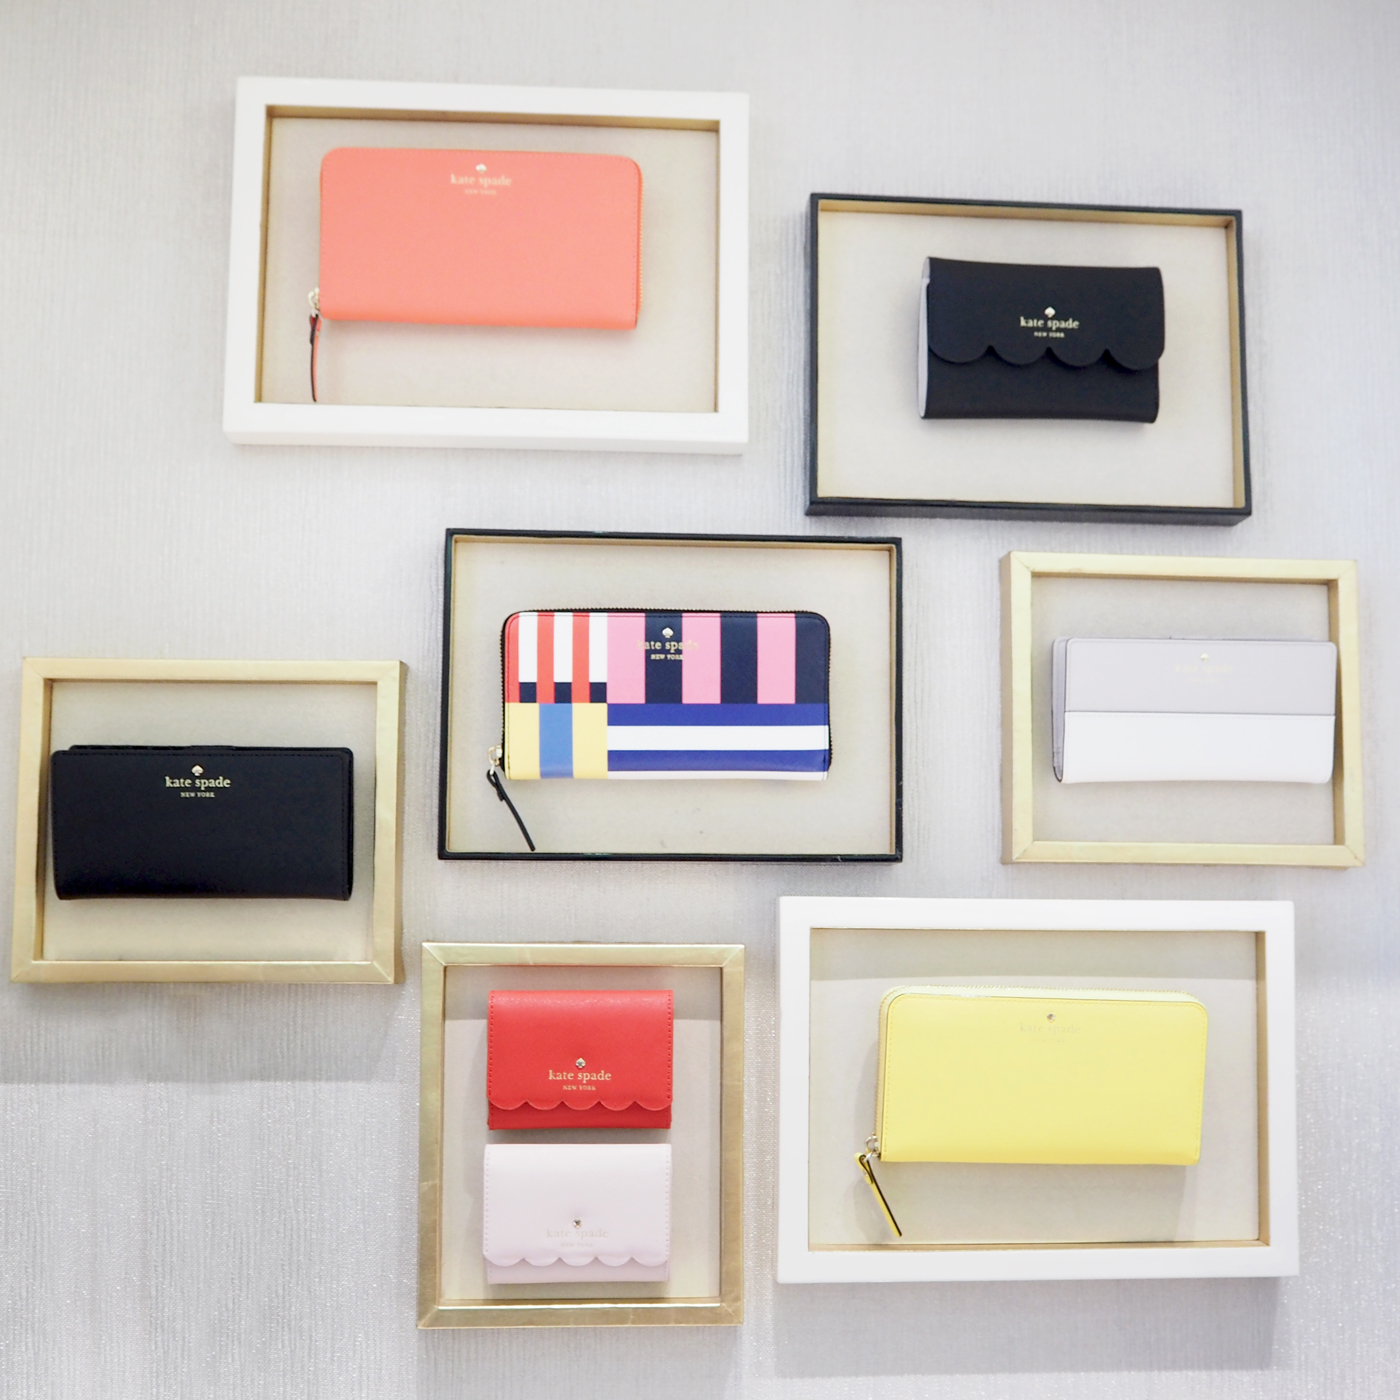 KATE SPADE MADISON NYC STORE WALL DISPLAY